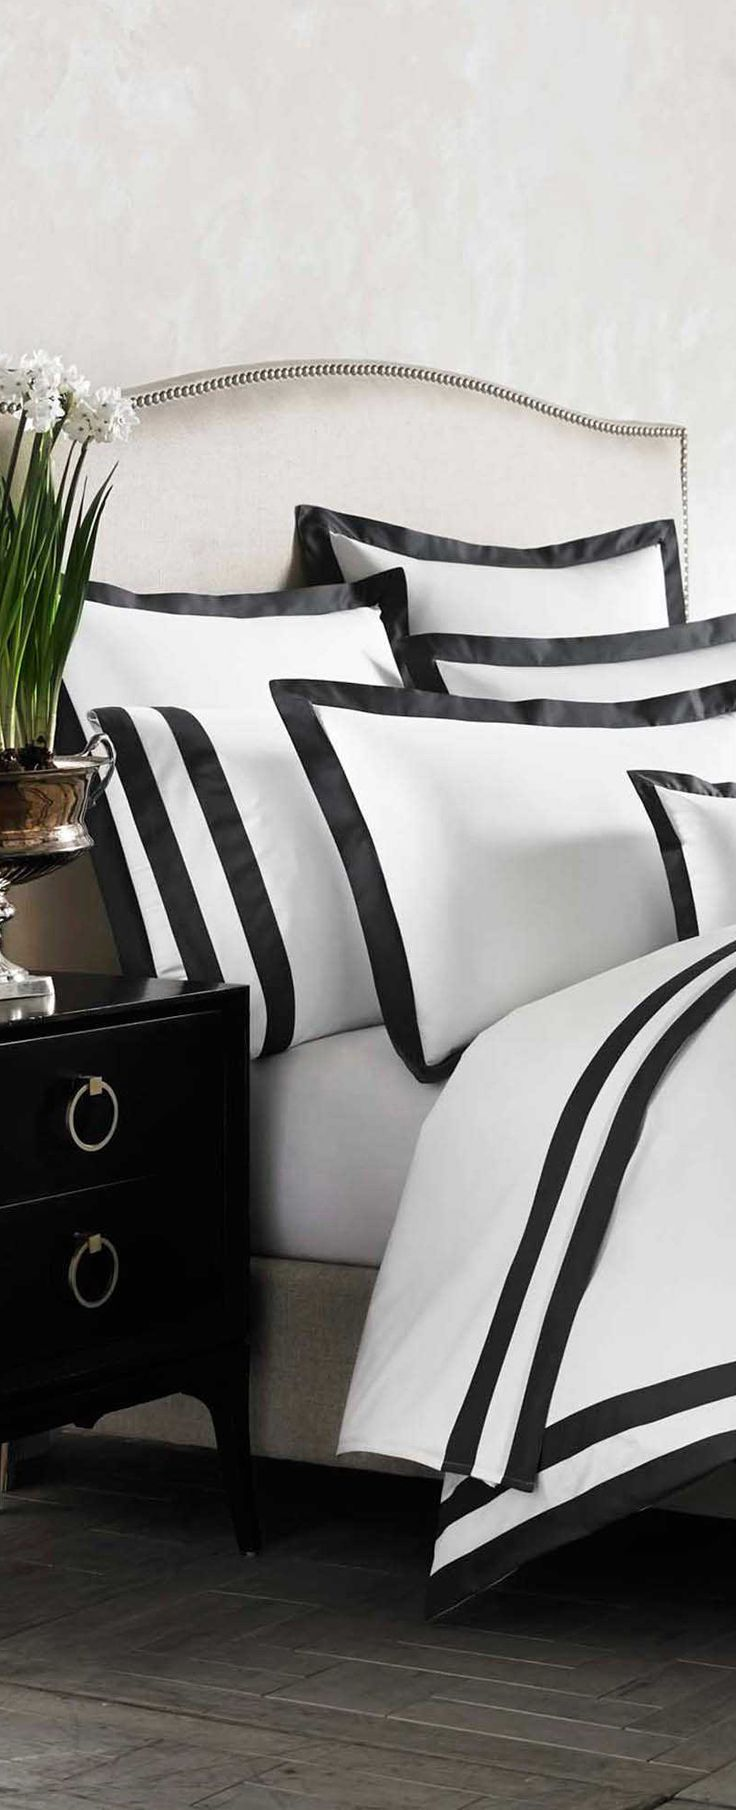 best 25 bed linen inspiration ideas on pinterest bed. Black Bedroom Furniture Sets. Home Design Ideas